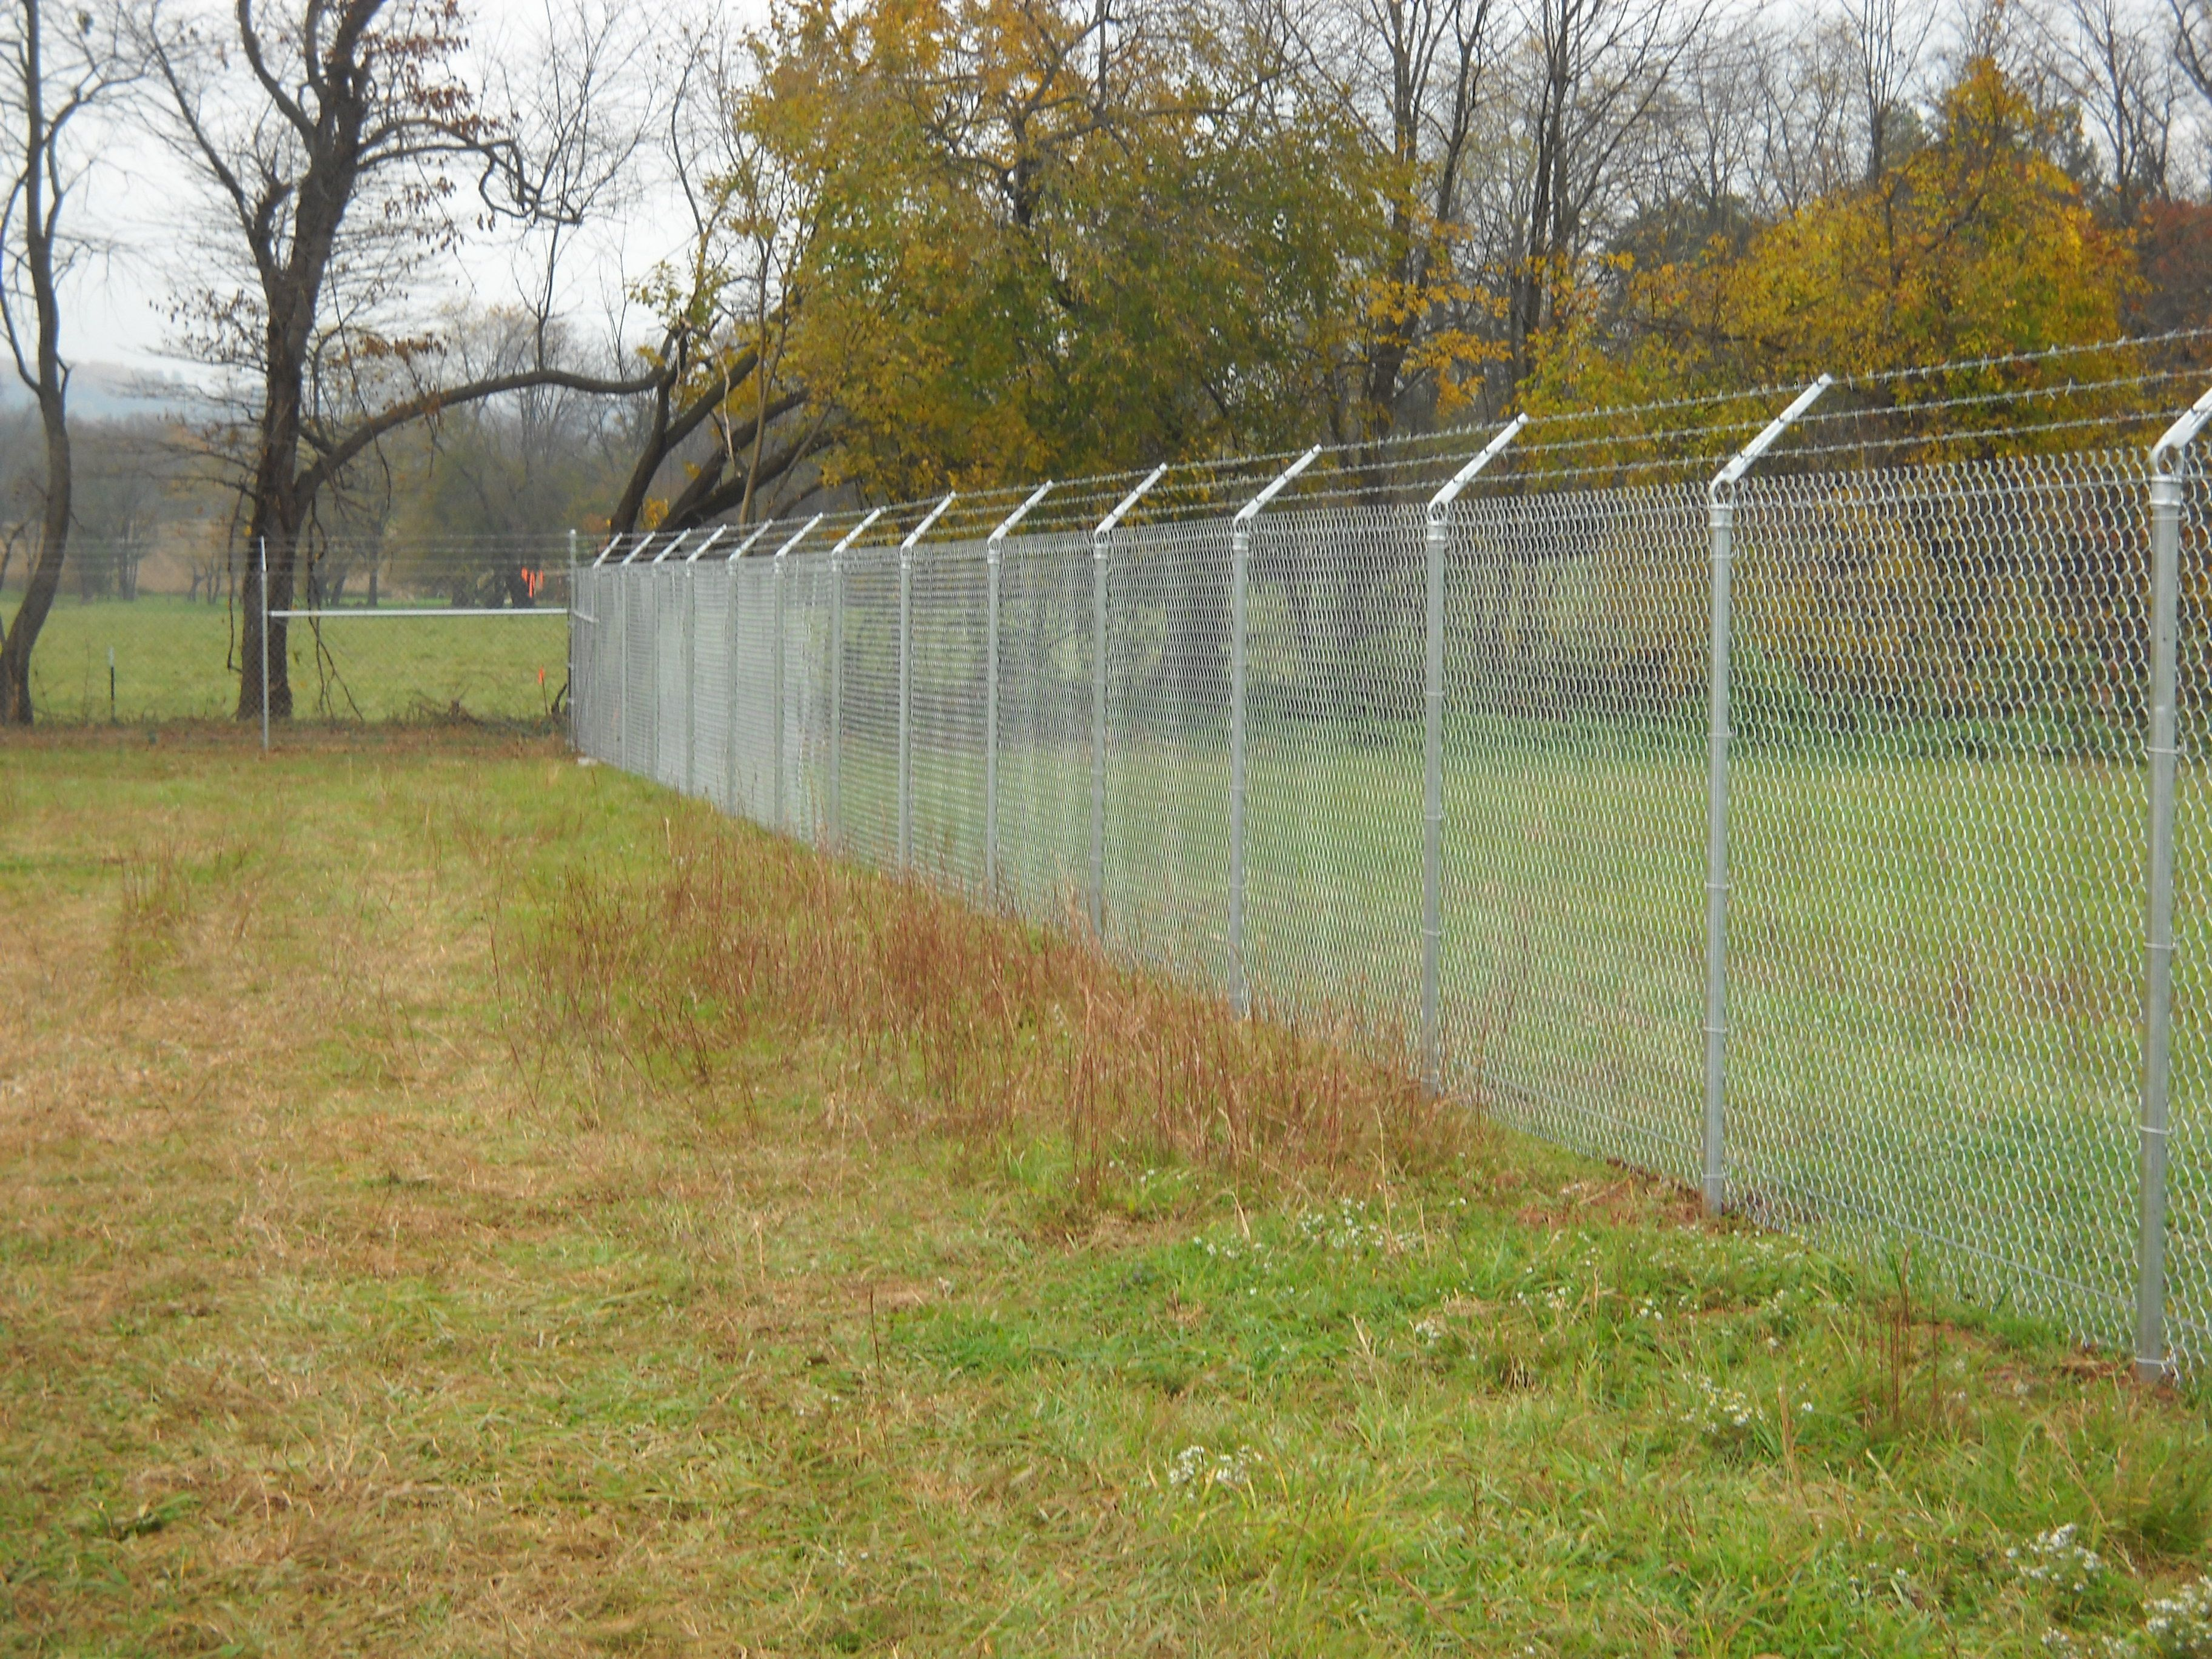 Privacy screen for chain link fence sears - Chain Link Fence